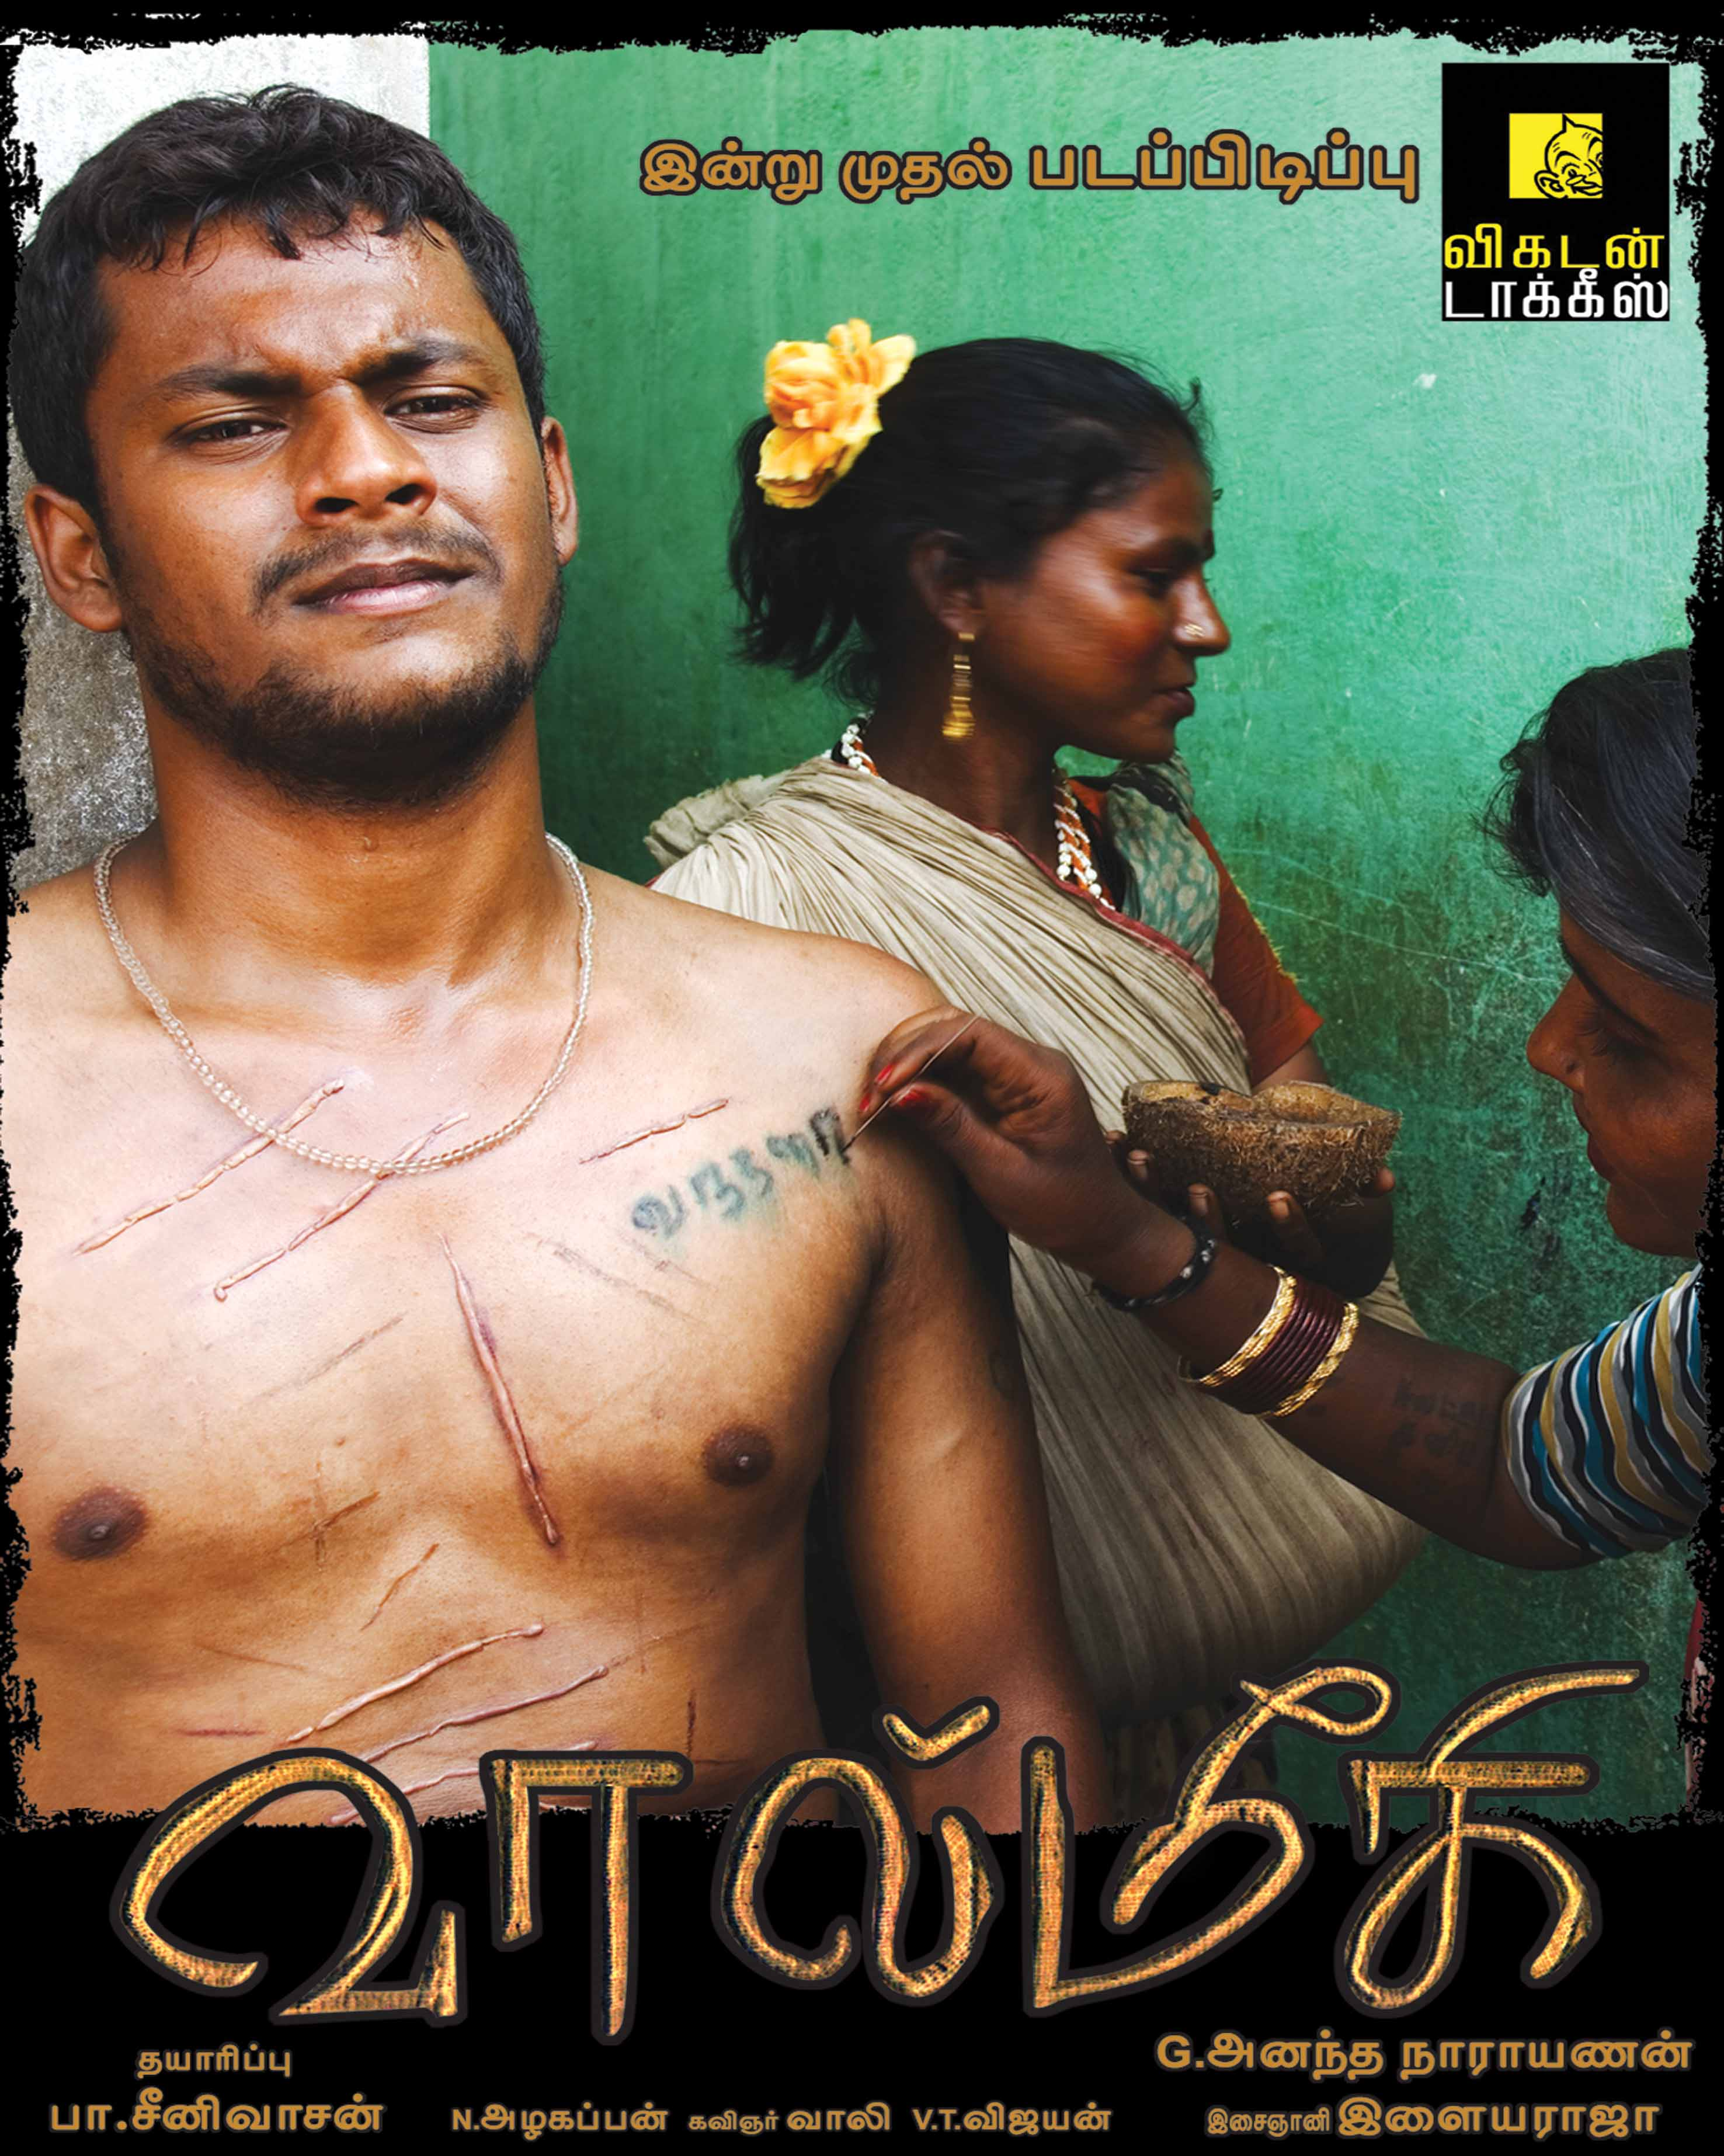 Tamil Cinema, Movies, Posters, Banners